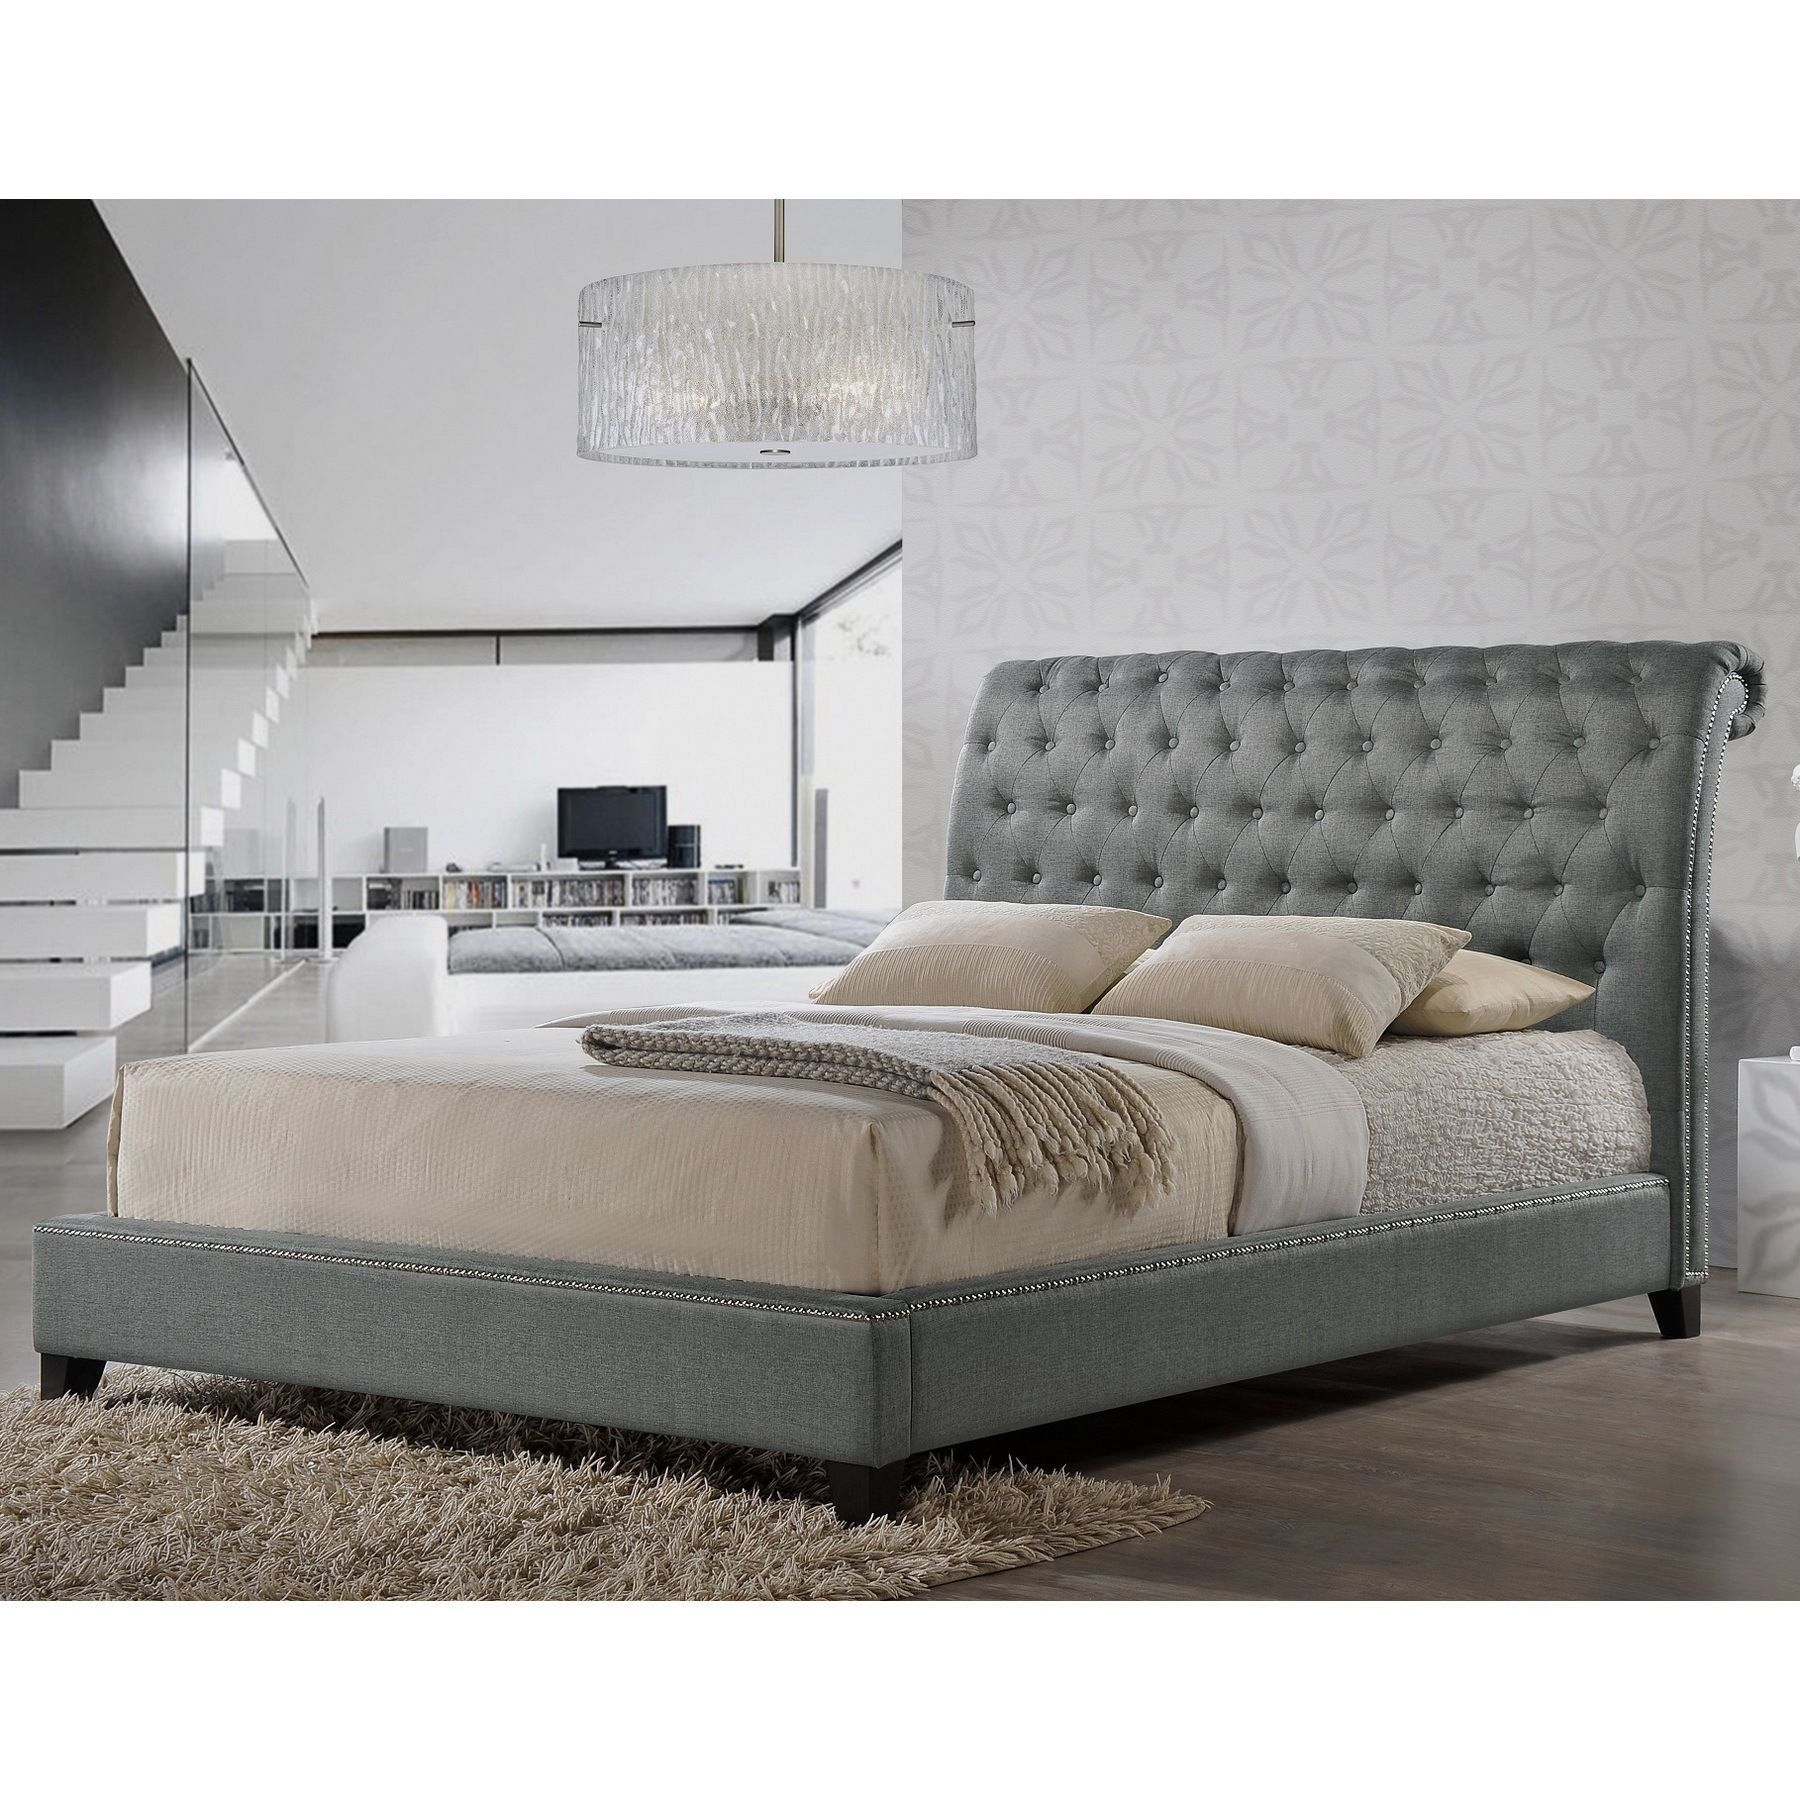 Jazmin Tufted Gray Modern Bed With Upholstered Headboard By Baxton